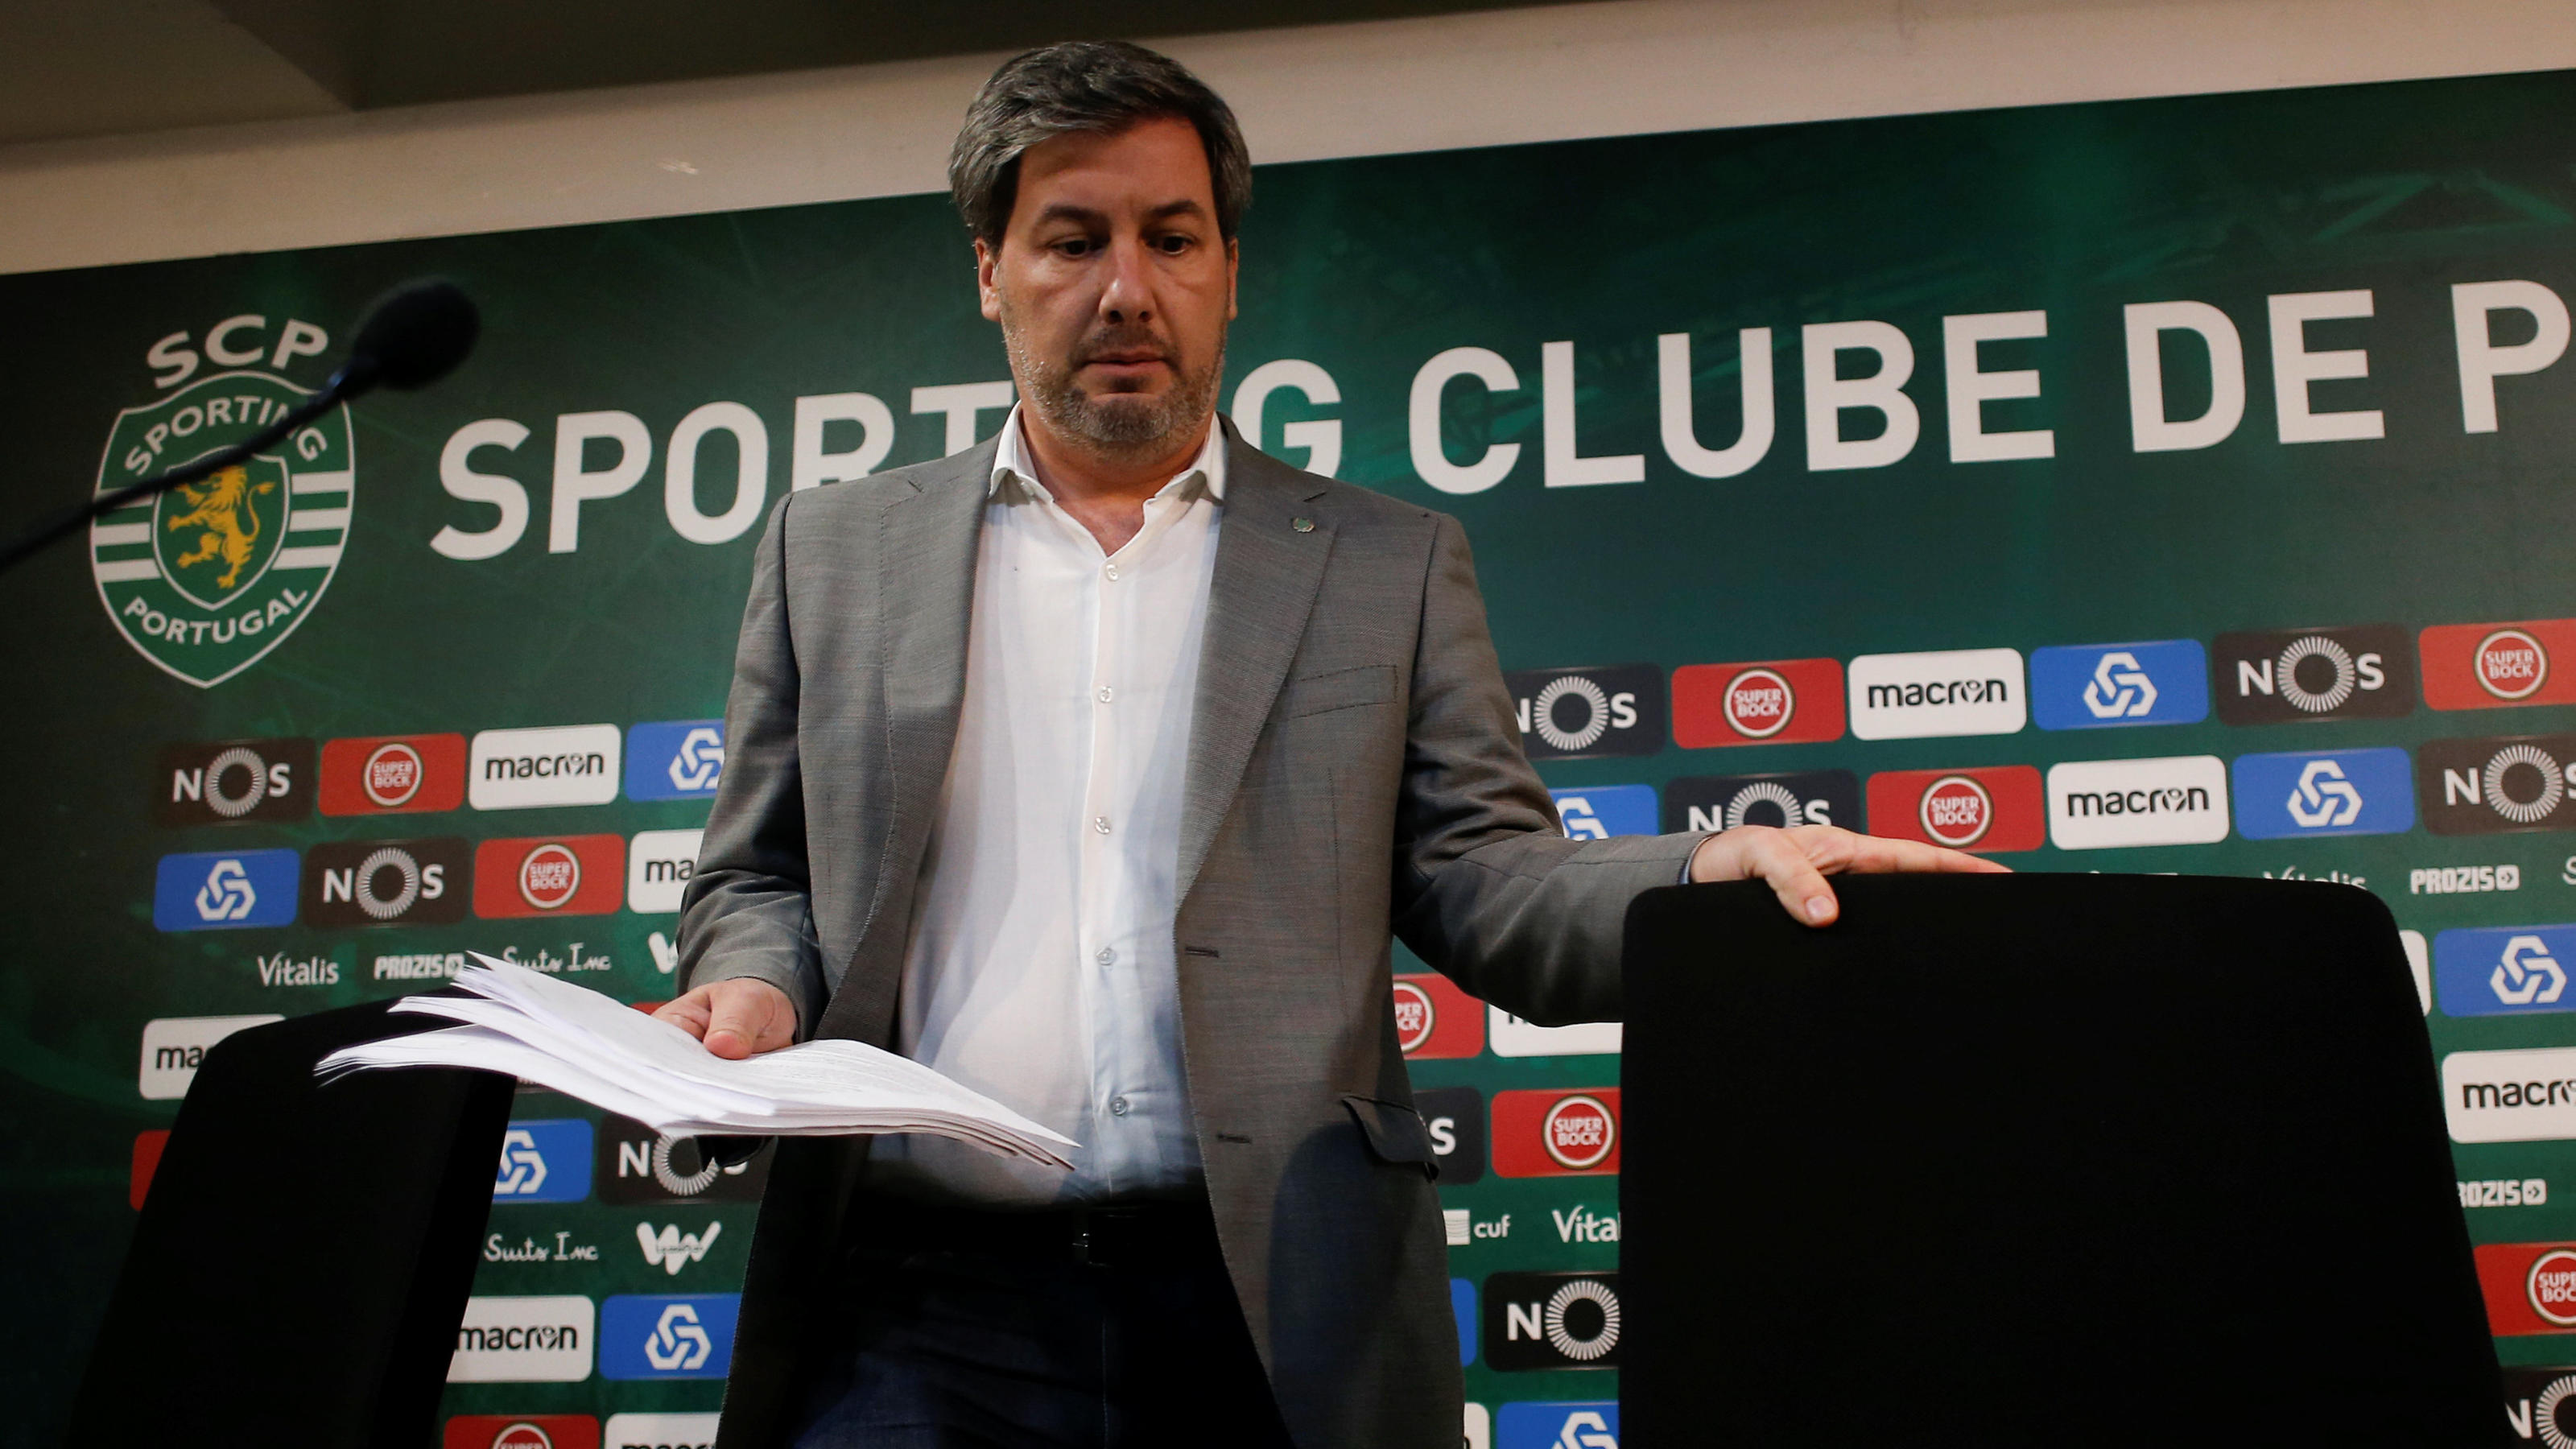 Sporting Portugal's President Bruno de Carvalho arrives at a news conference in Estadio Jose Alvalade in Lisbon, Portugal June 11, 2018. Picture taken June 11, 2018. REUTERS/Pedro Nunes